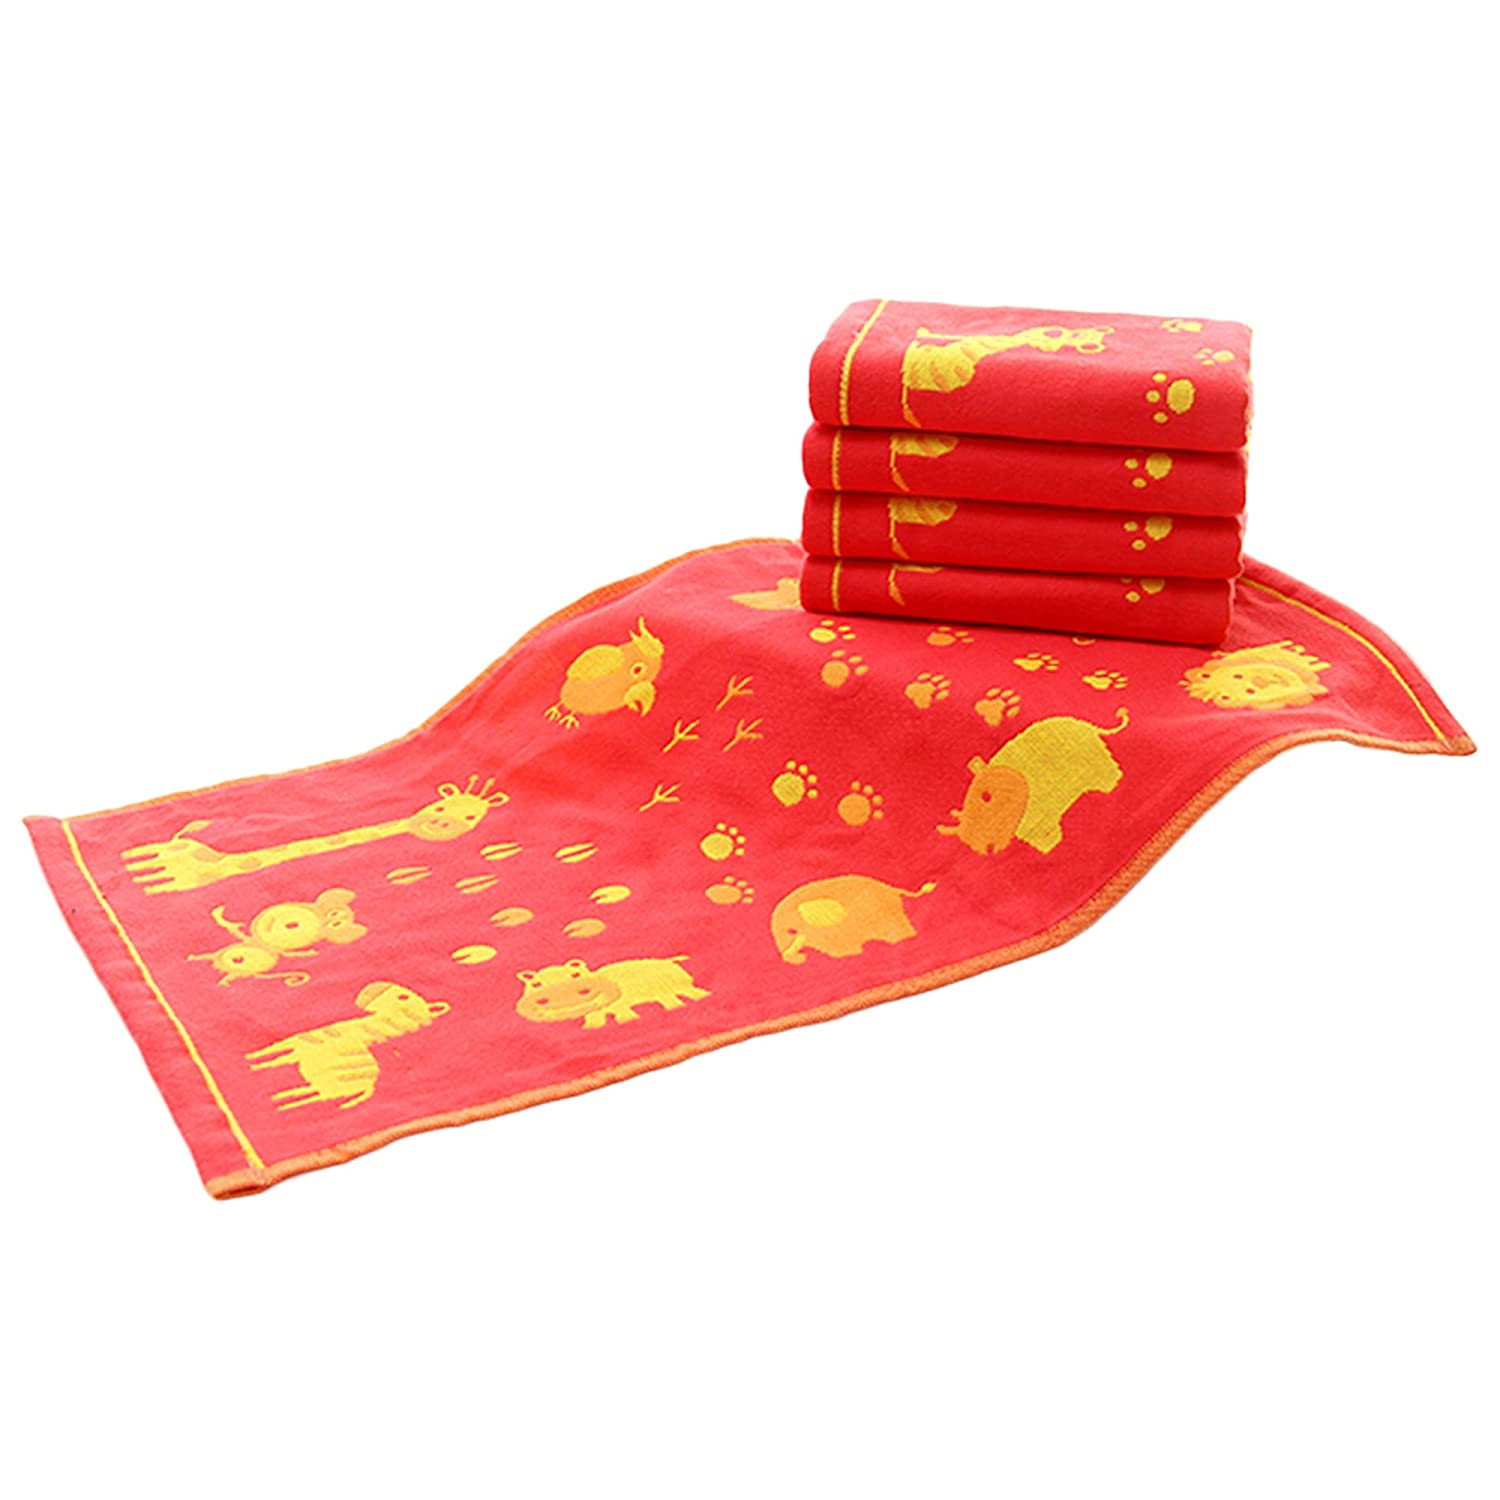 Premium Baby Cotton Towel Set - 100% Cotton Cute Animal Baby Hand Towel - Water Absorbent Care for Delicate Skin - Ultra Soft - for Boys Girls Newborns Infants Toddlers - 10 × 20 - 5 Pieces (red) Lovefire International